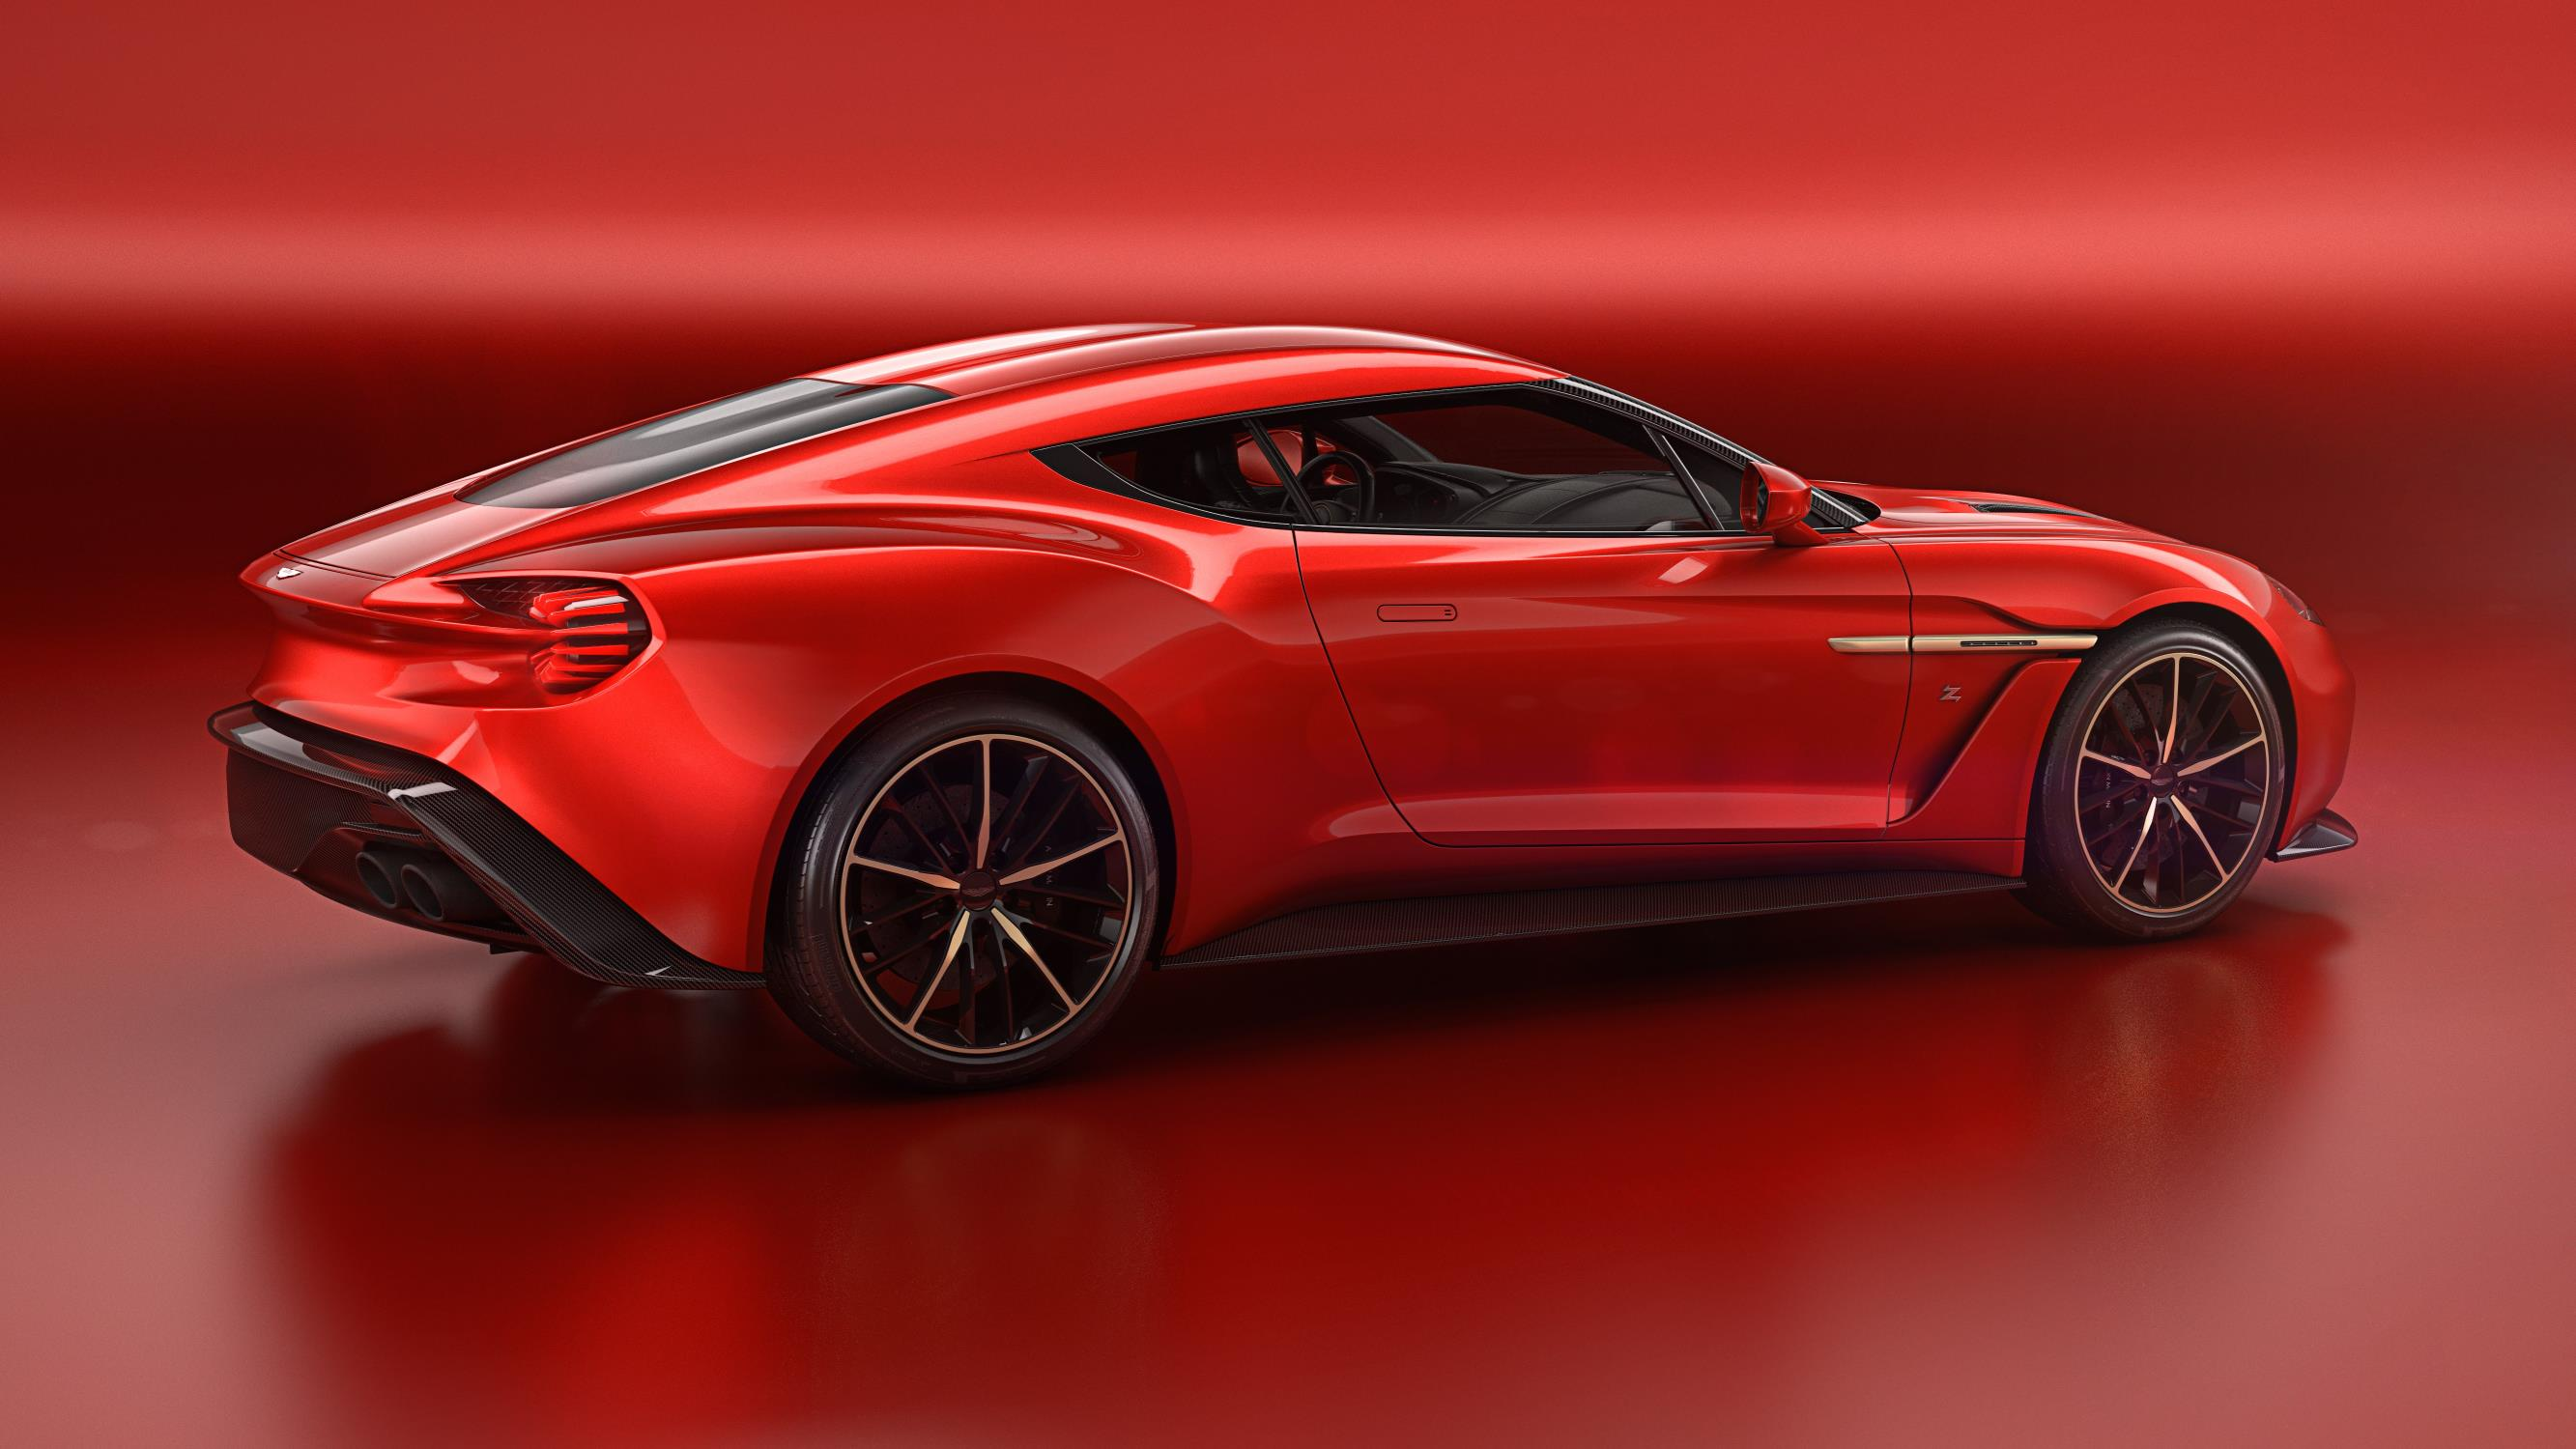 Aston Martin Vanquish Zagato Speedster Rendered As The